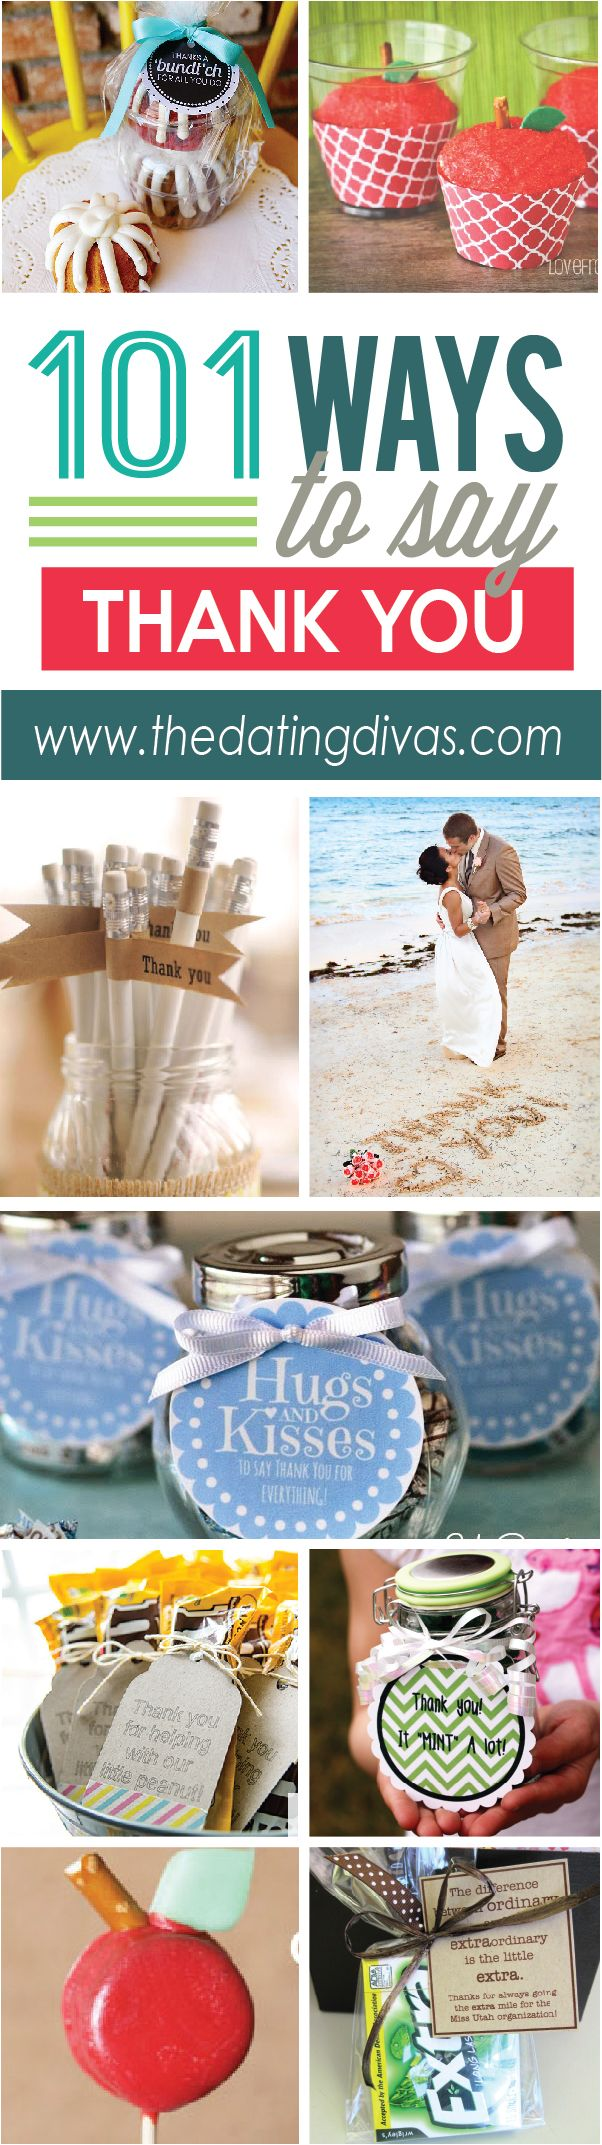 These 101 creative ways to say thank you are perfect for any occasion. www.TheDatingDivas.com